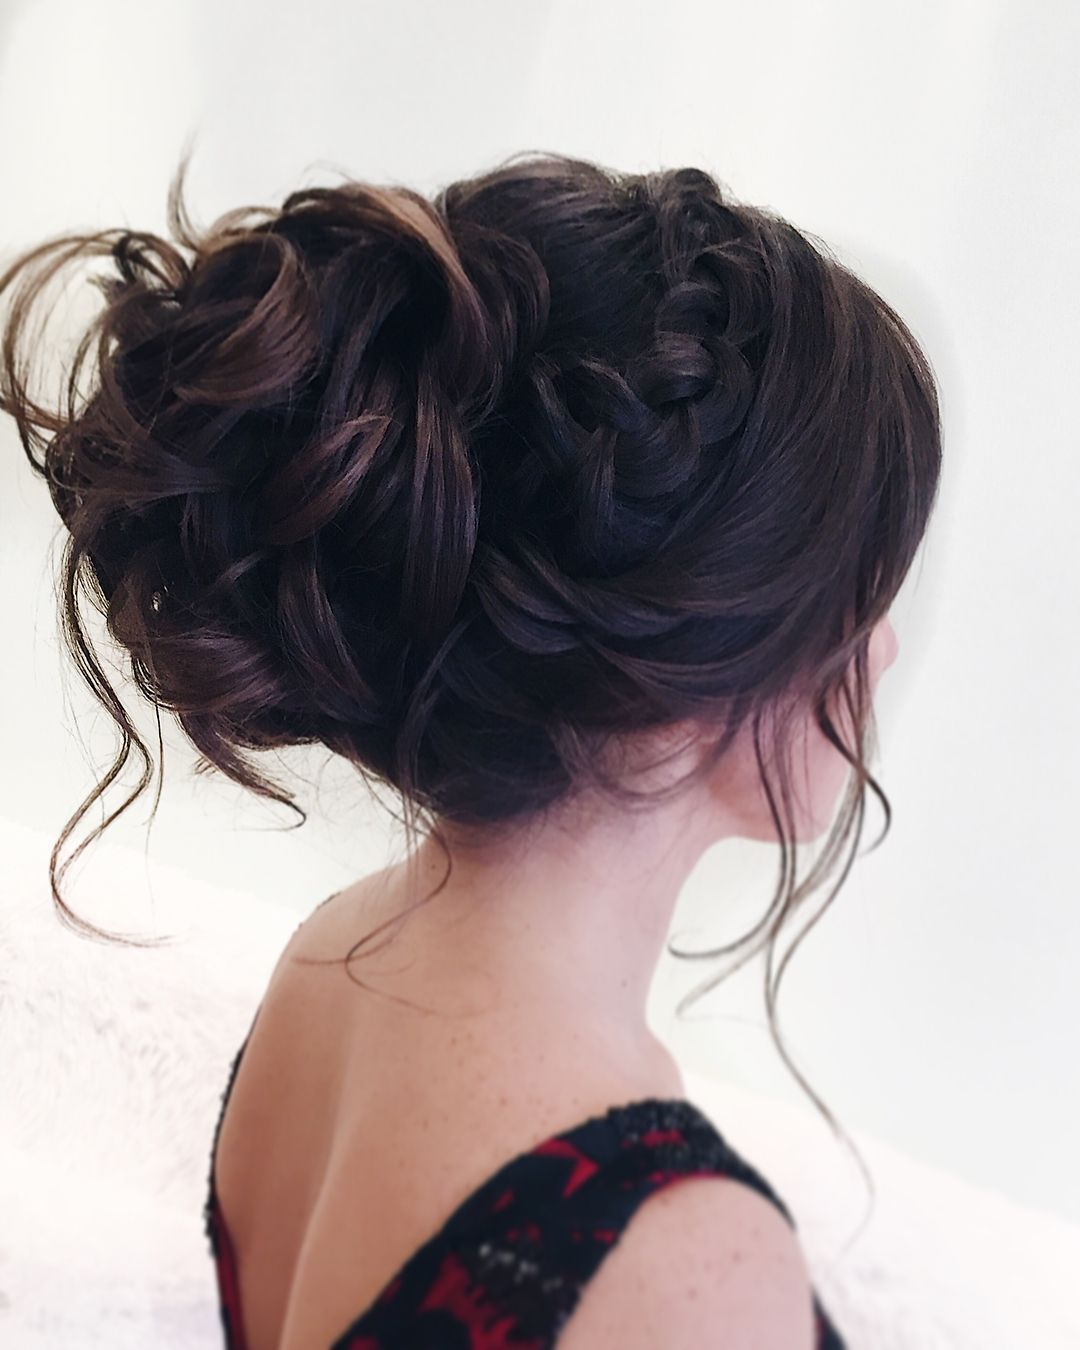 Messy updo hairstyle swept back bridal hairstyle updo hairstyles